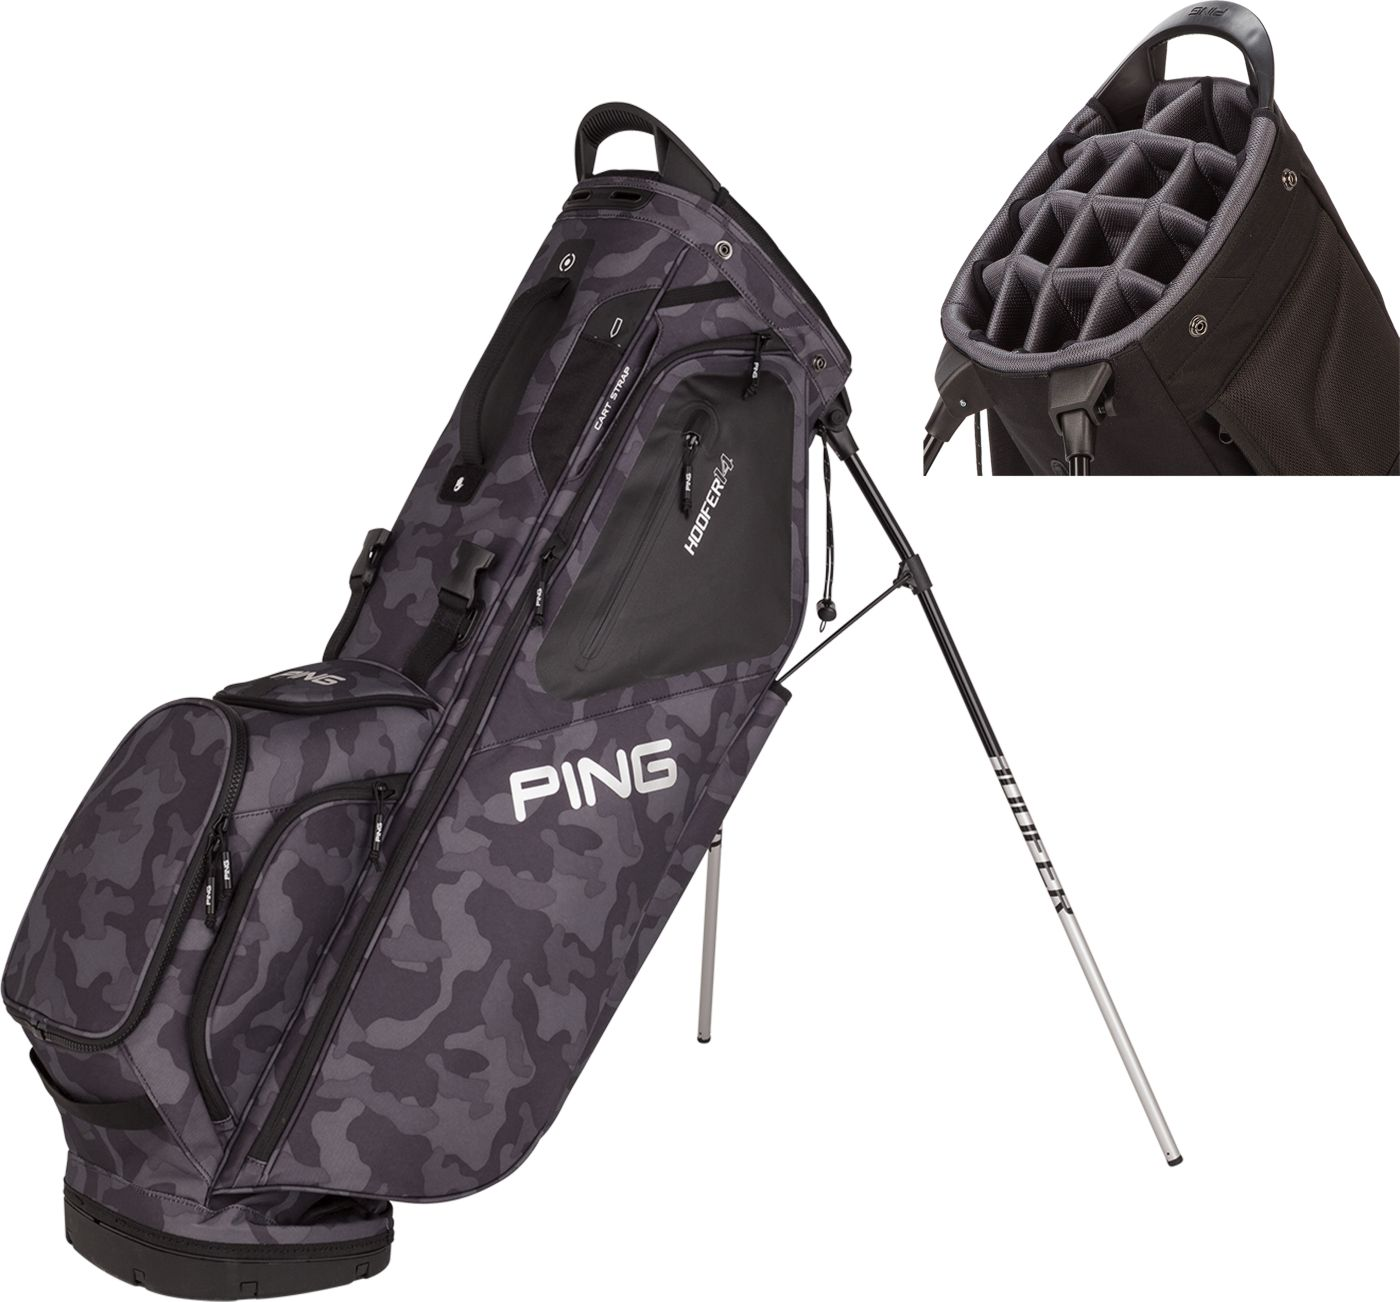 PING 2018 Hoofer 14 Stand Bag